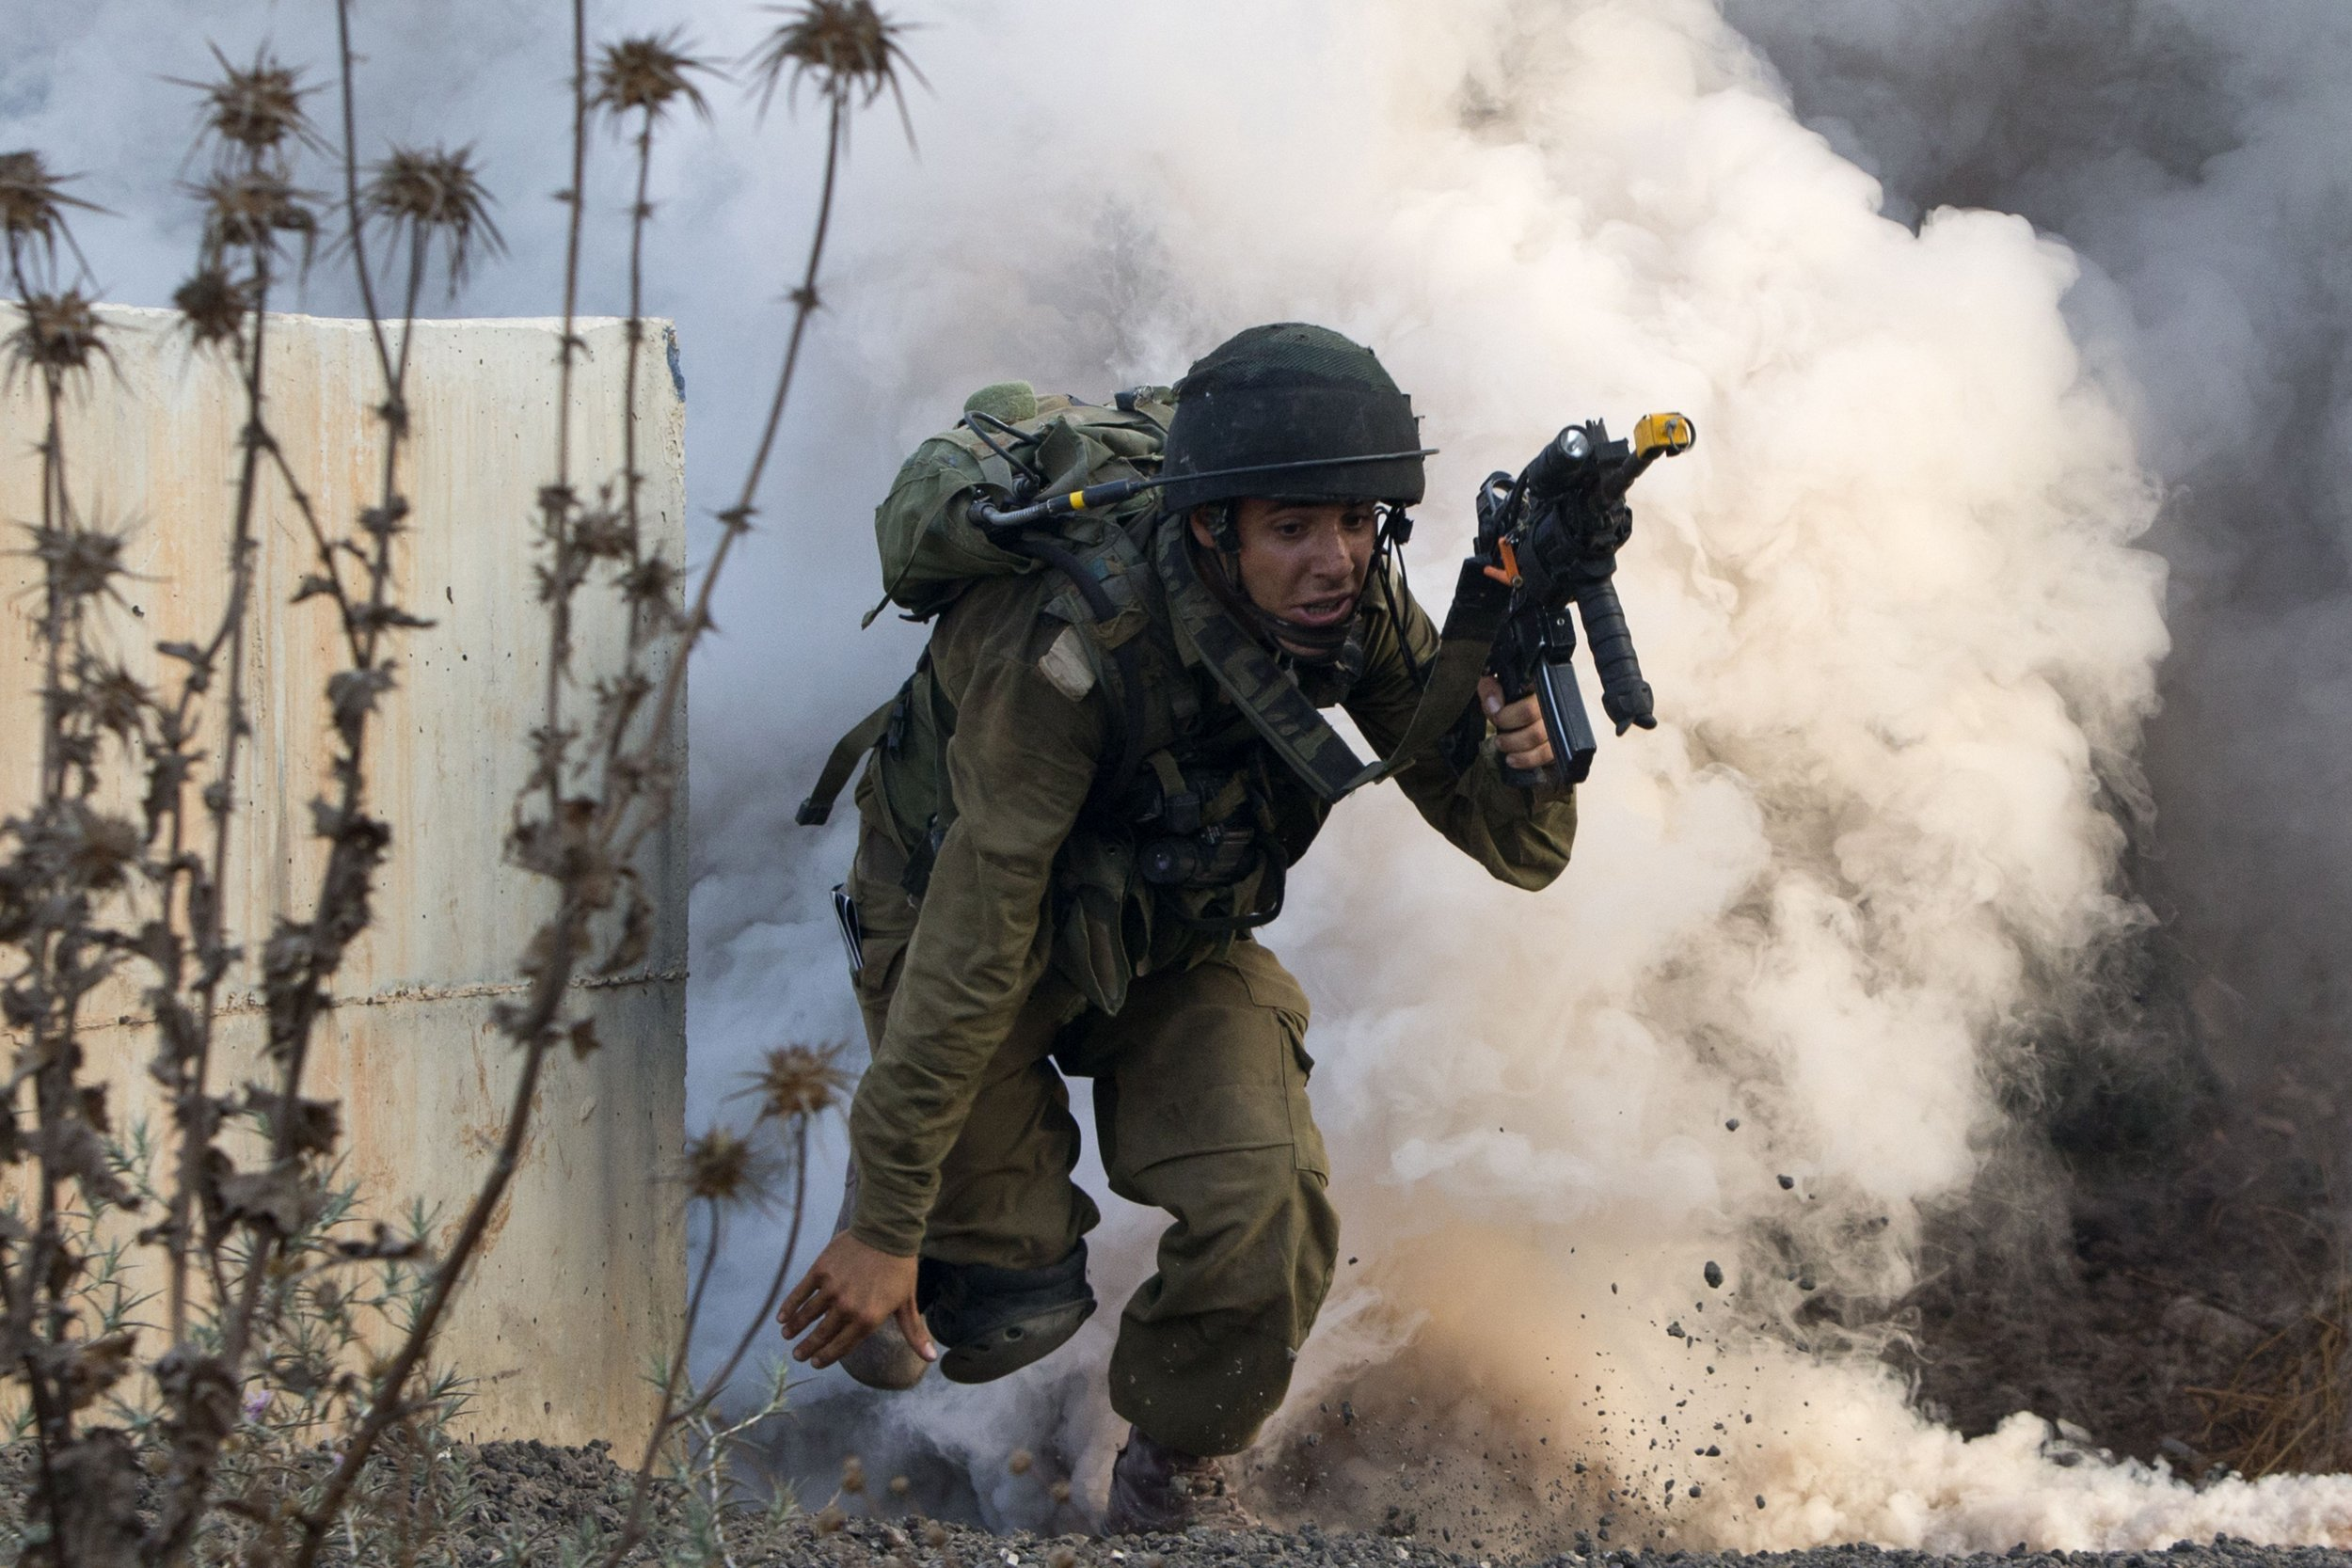 Israeli infantry simulating combat with Hezbollah